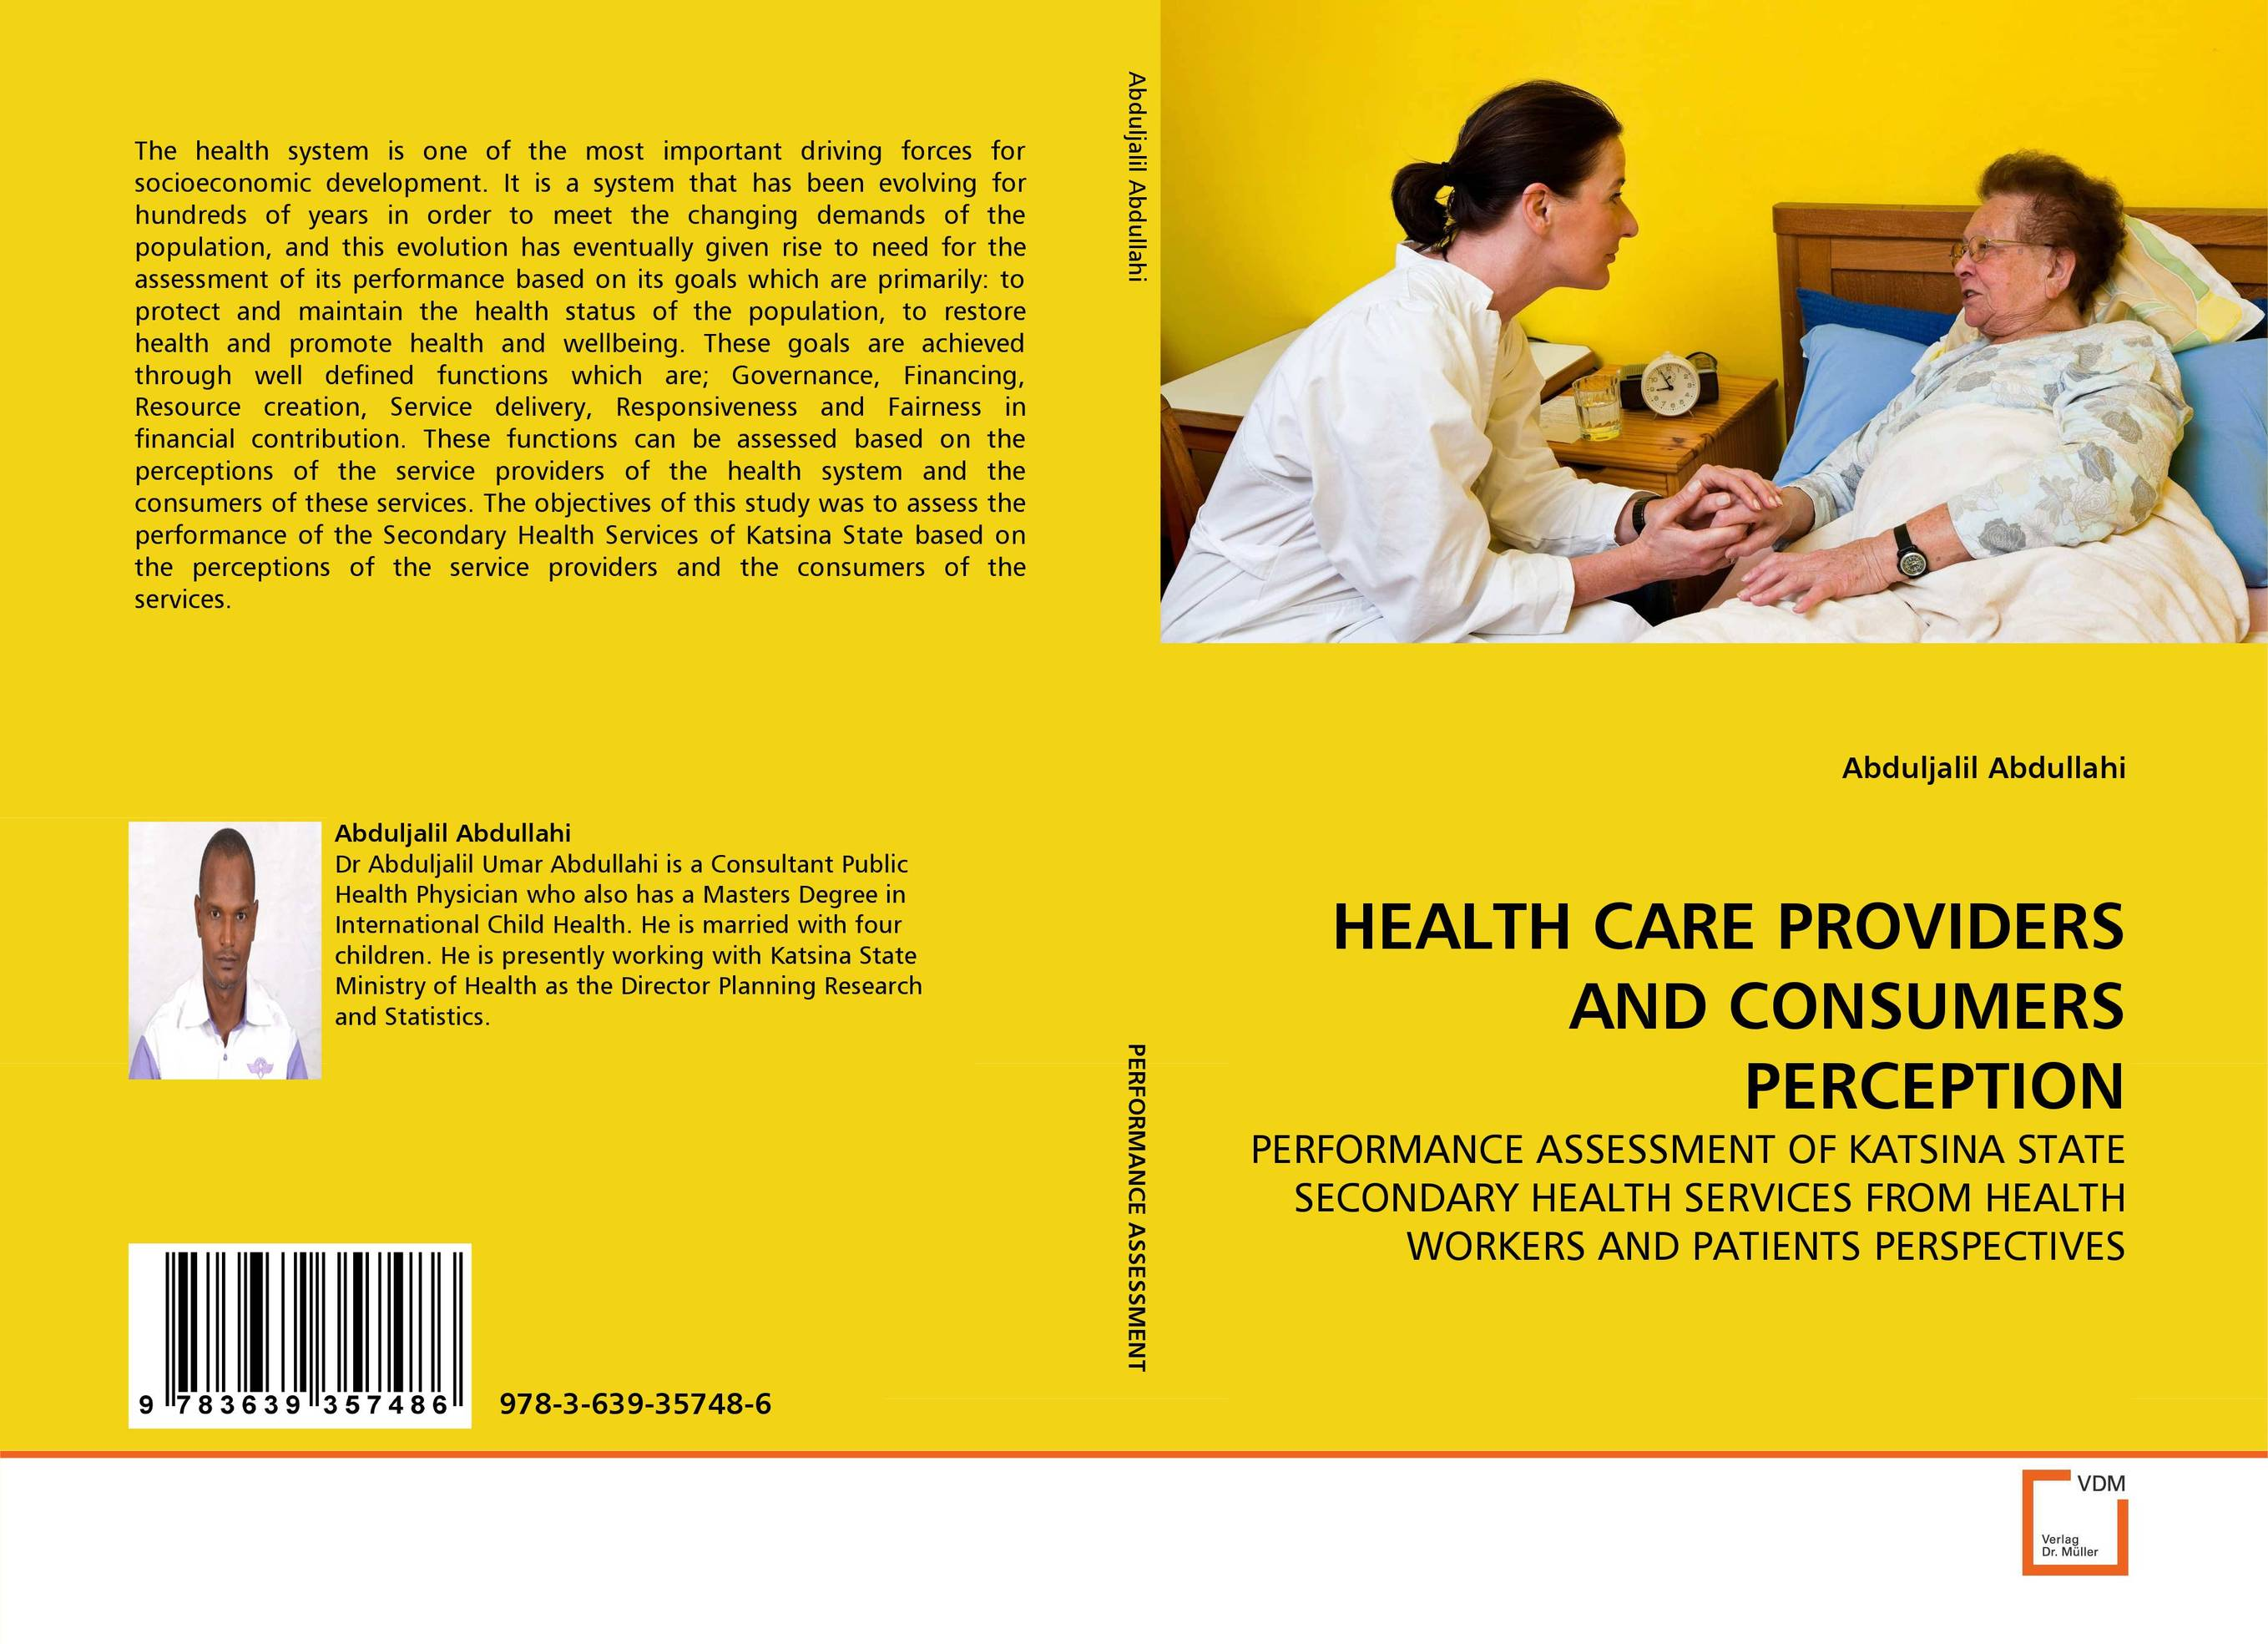 HEALTH CARE PROVIDERS AND CONSUMERS PERCEPTION